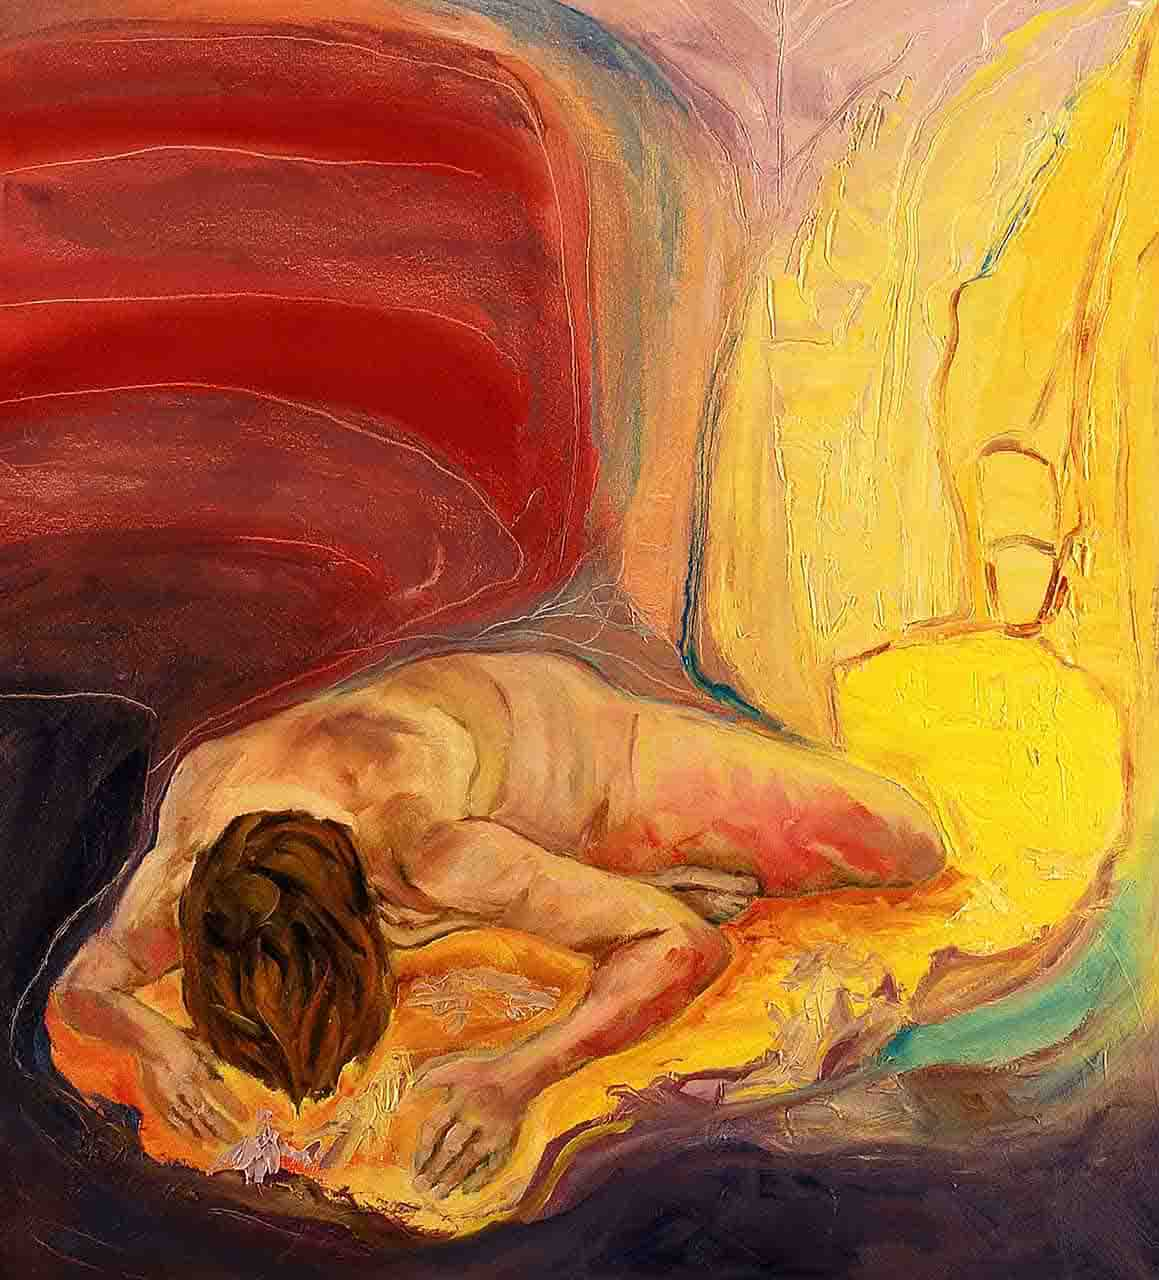 Pain and restlessness that expresses the soul of her that has fallen for the love that is gone, but the light illuminates and brings hope.